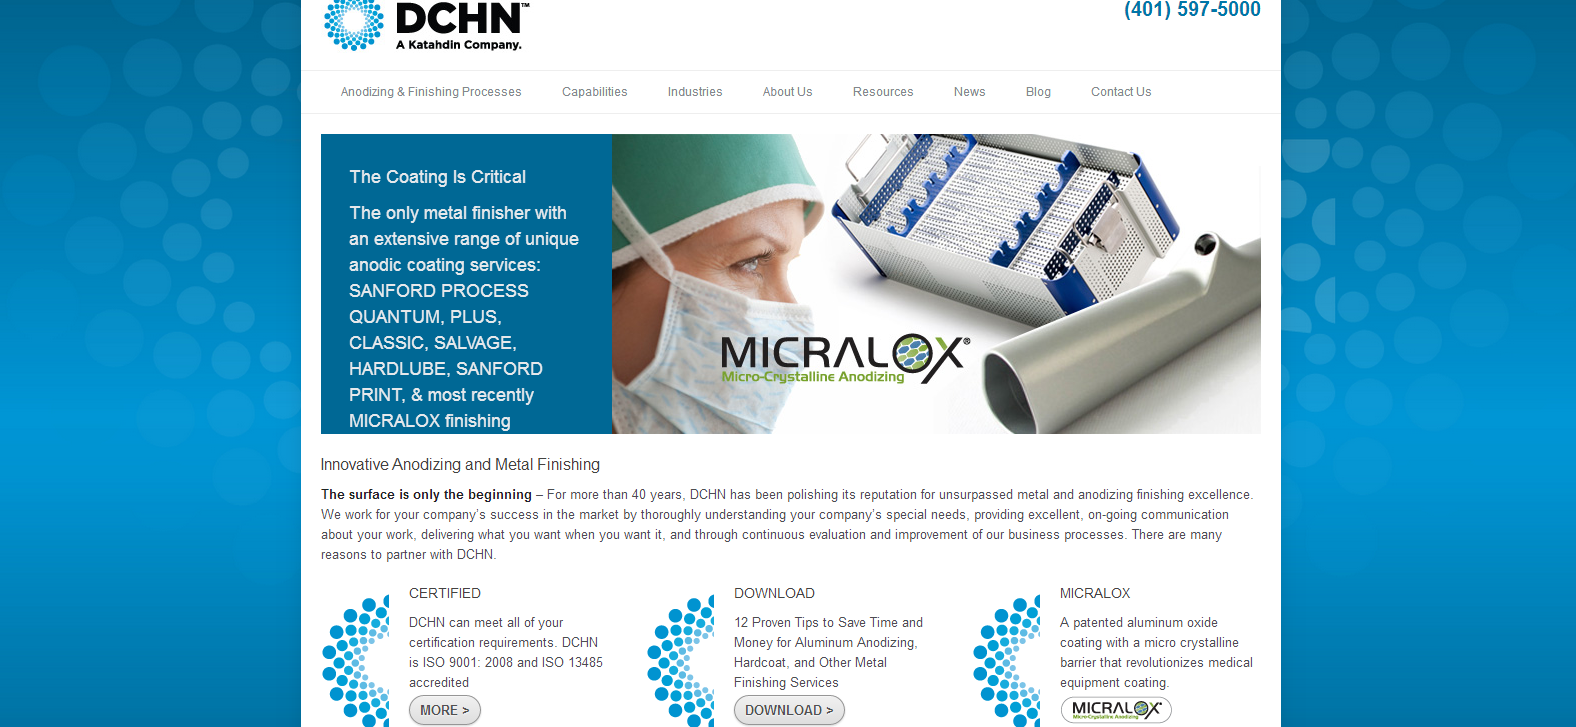 Grant Marketing Redesigns Corporate Website of DCHN.